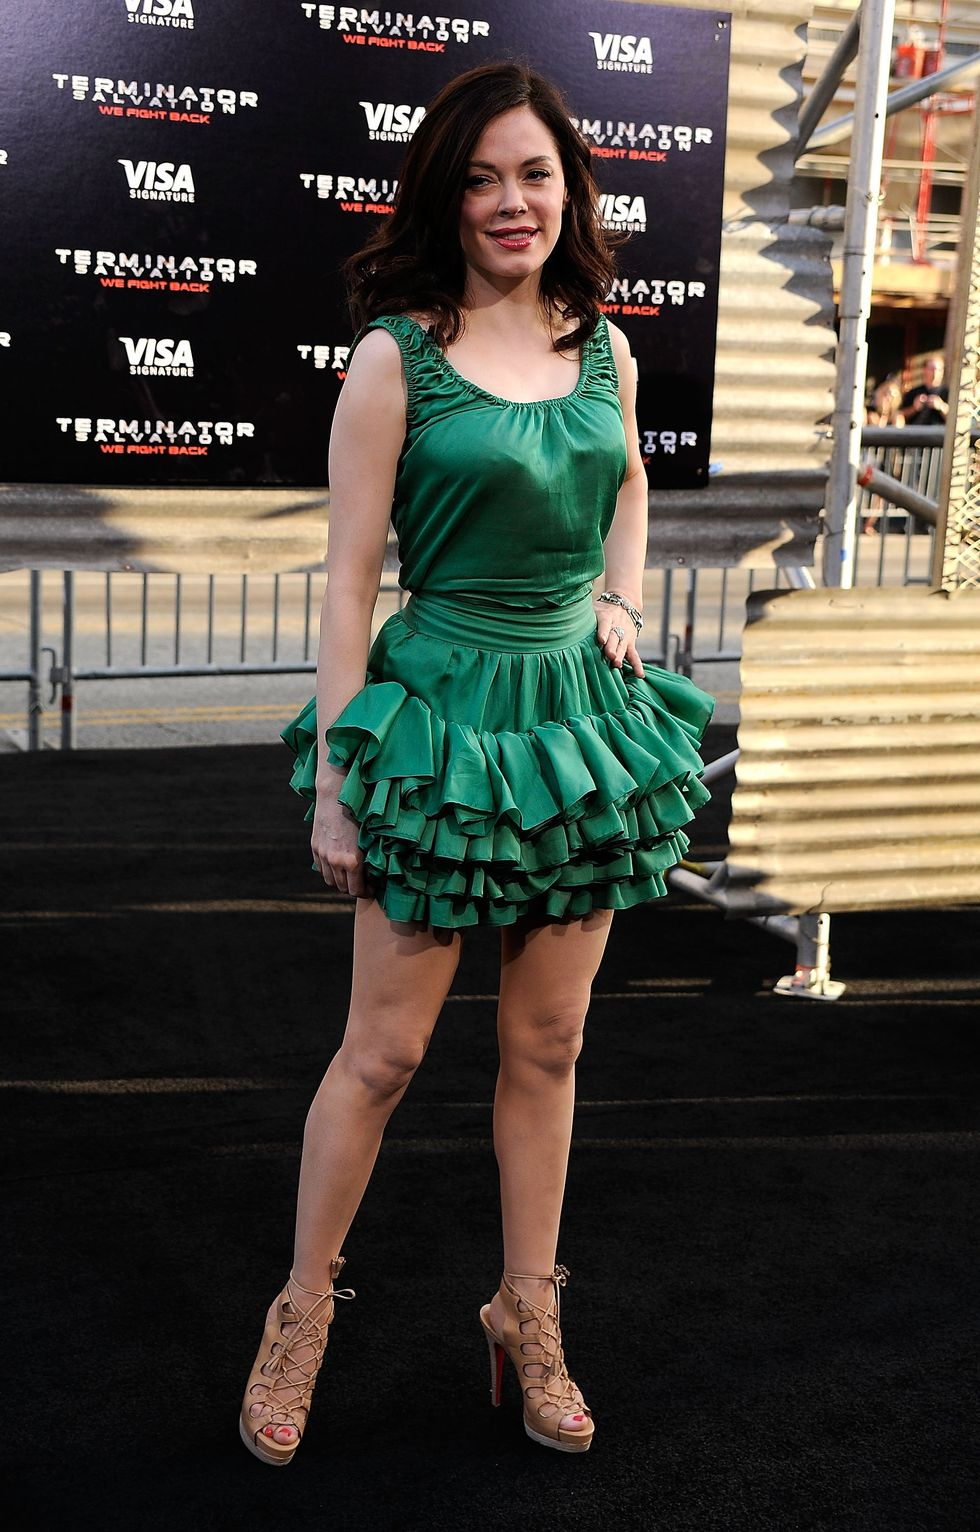 rose-mcgowan-terminator-salvation-premiere-in-hollywood-04